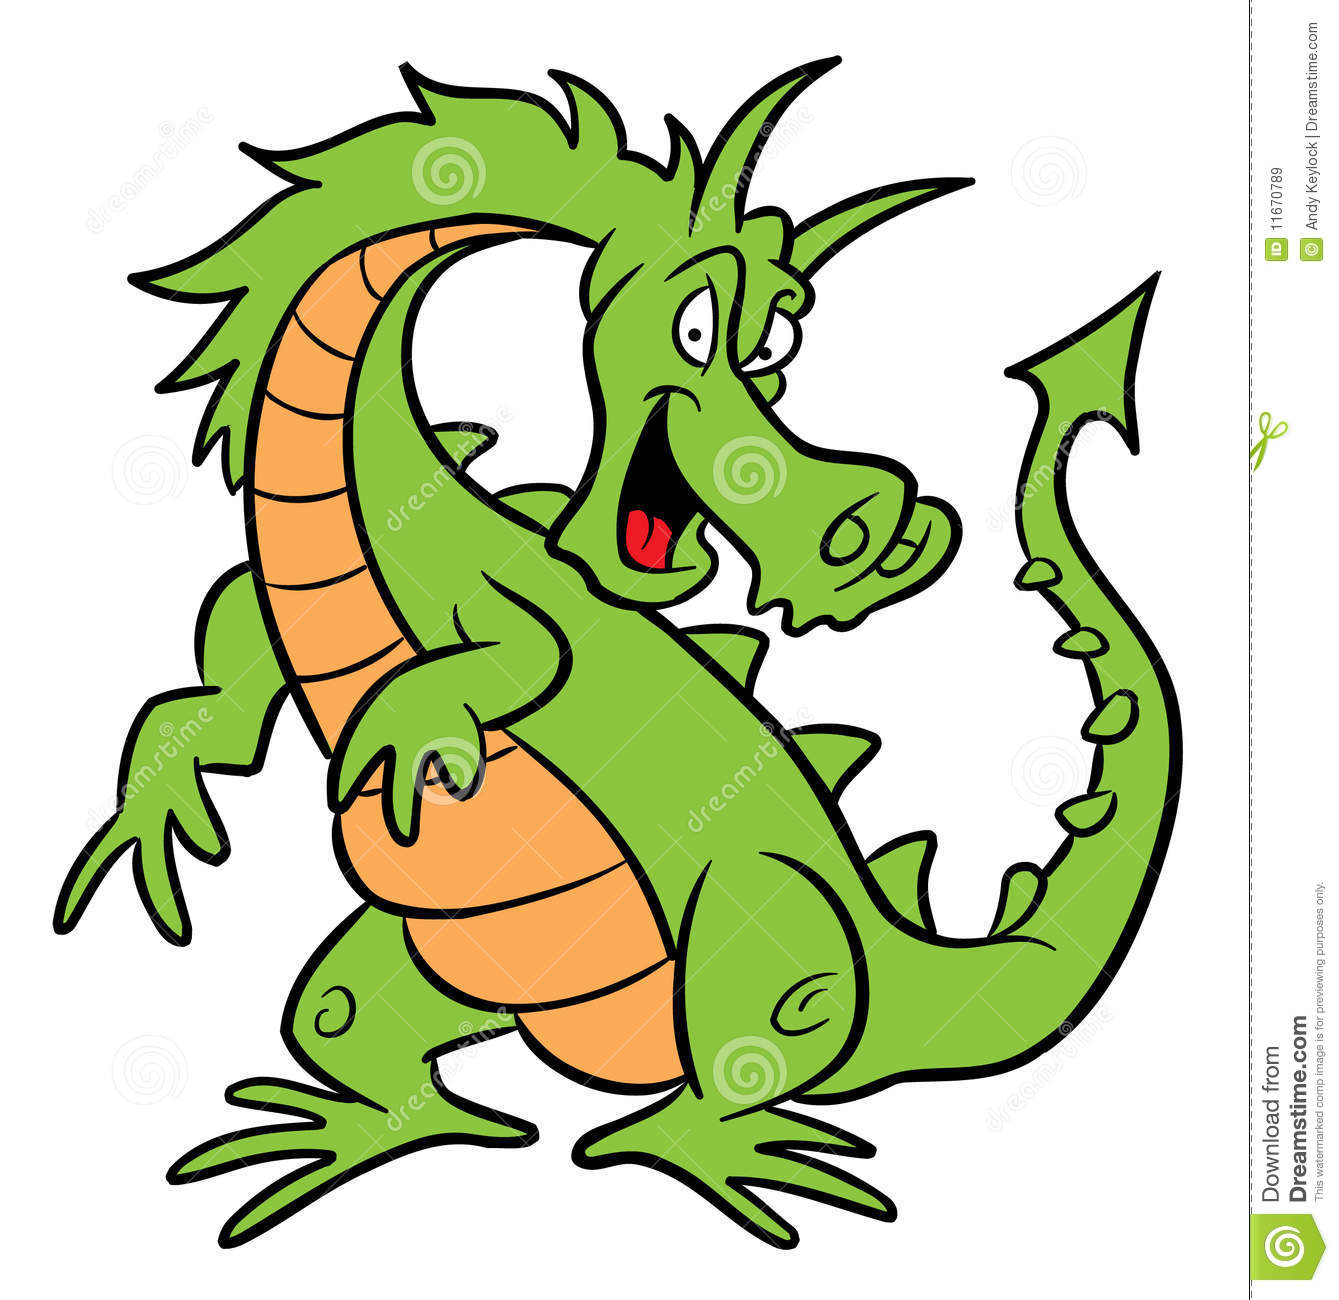 Illustration de dessin anim de dragon vert illustration - Dessin dragon couleur ...